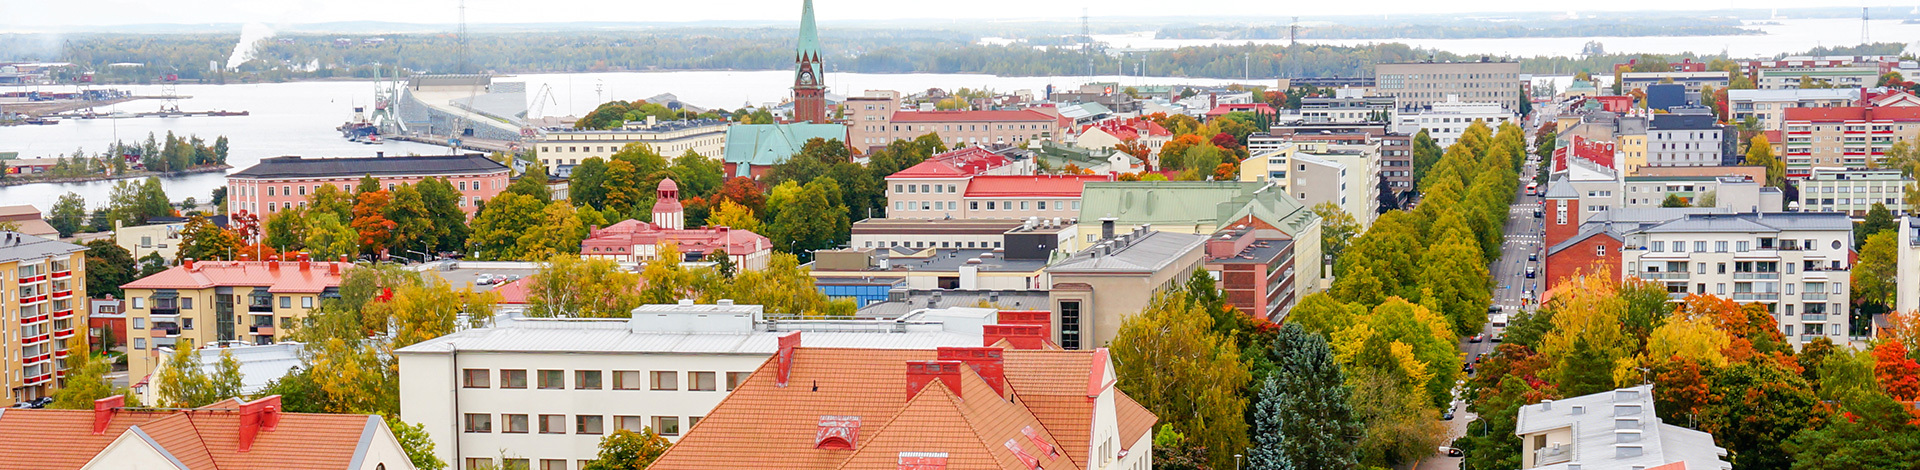 View of Kotka